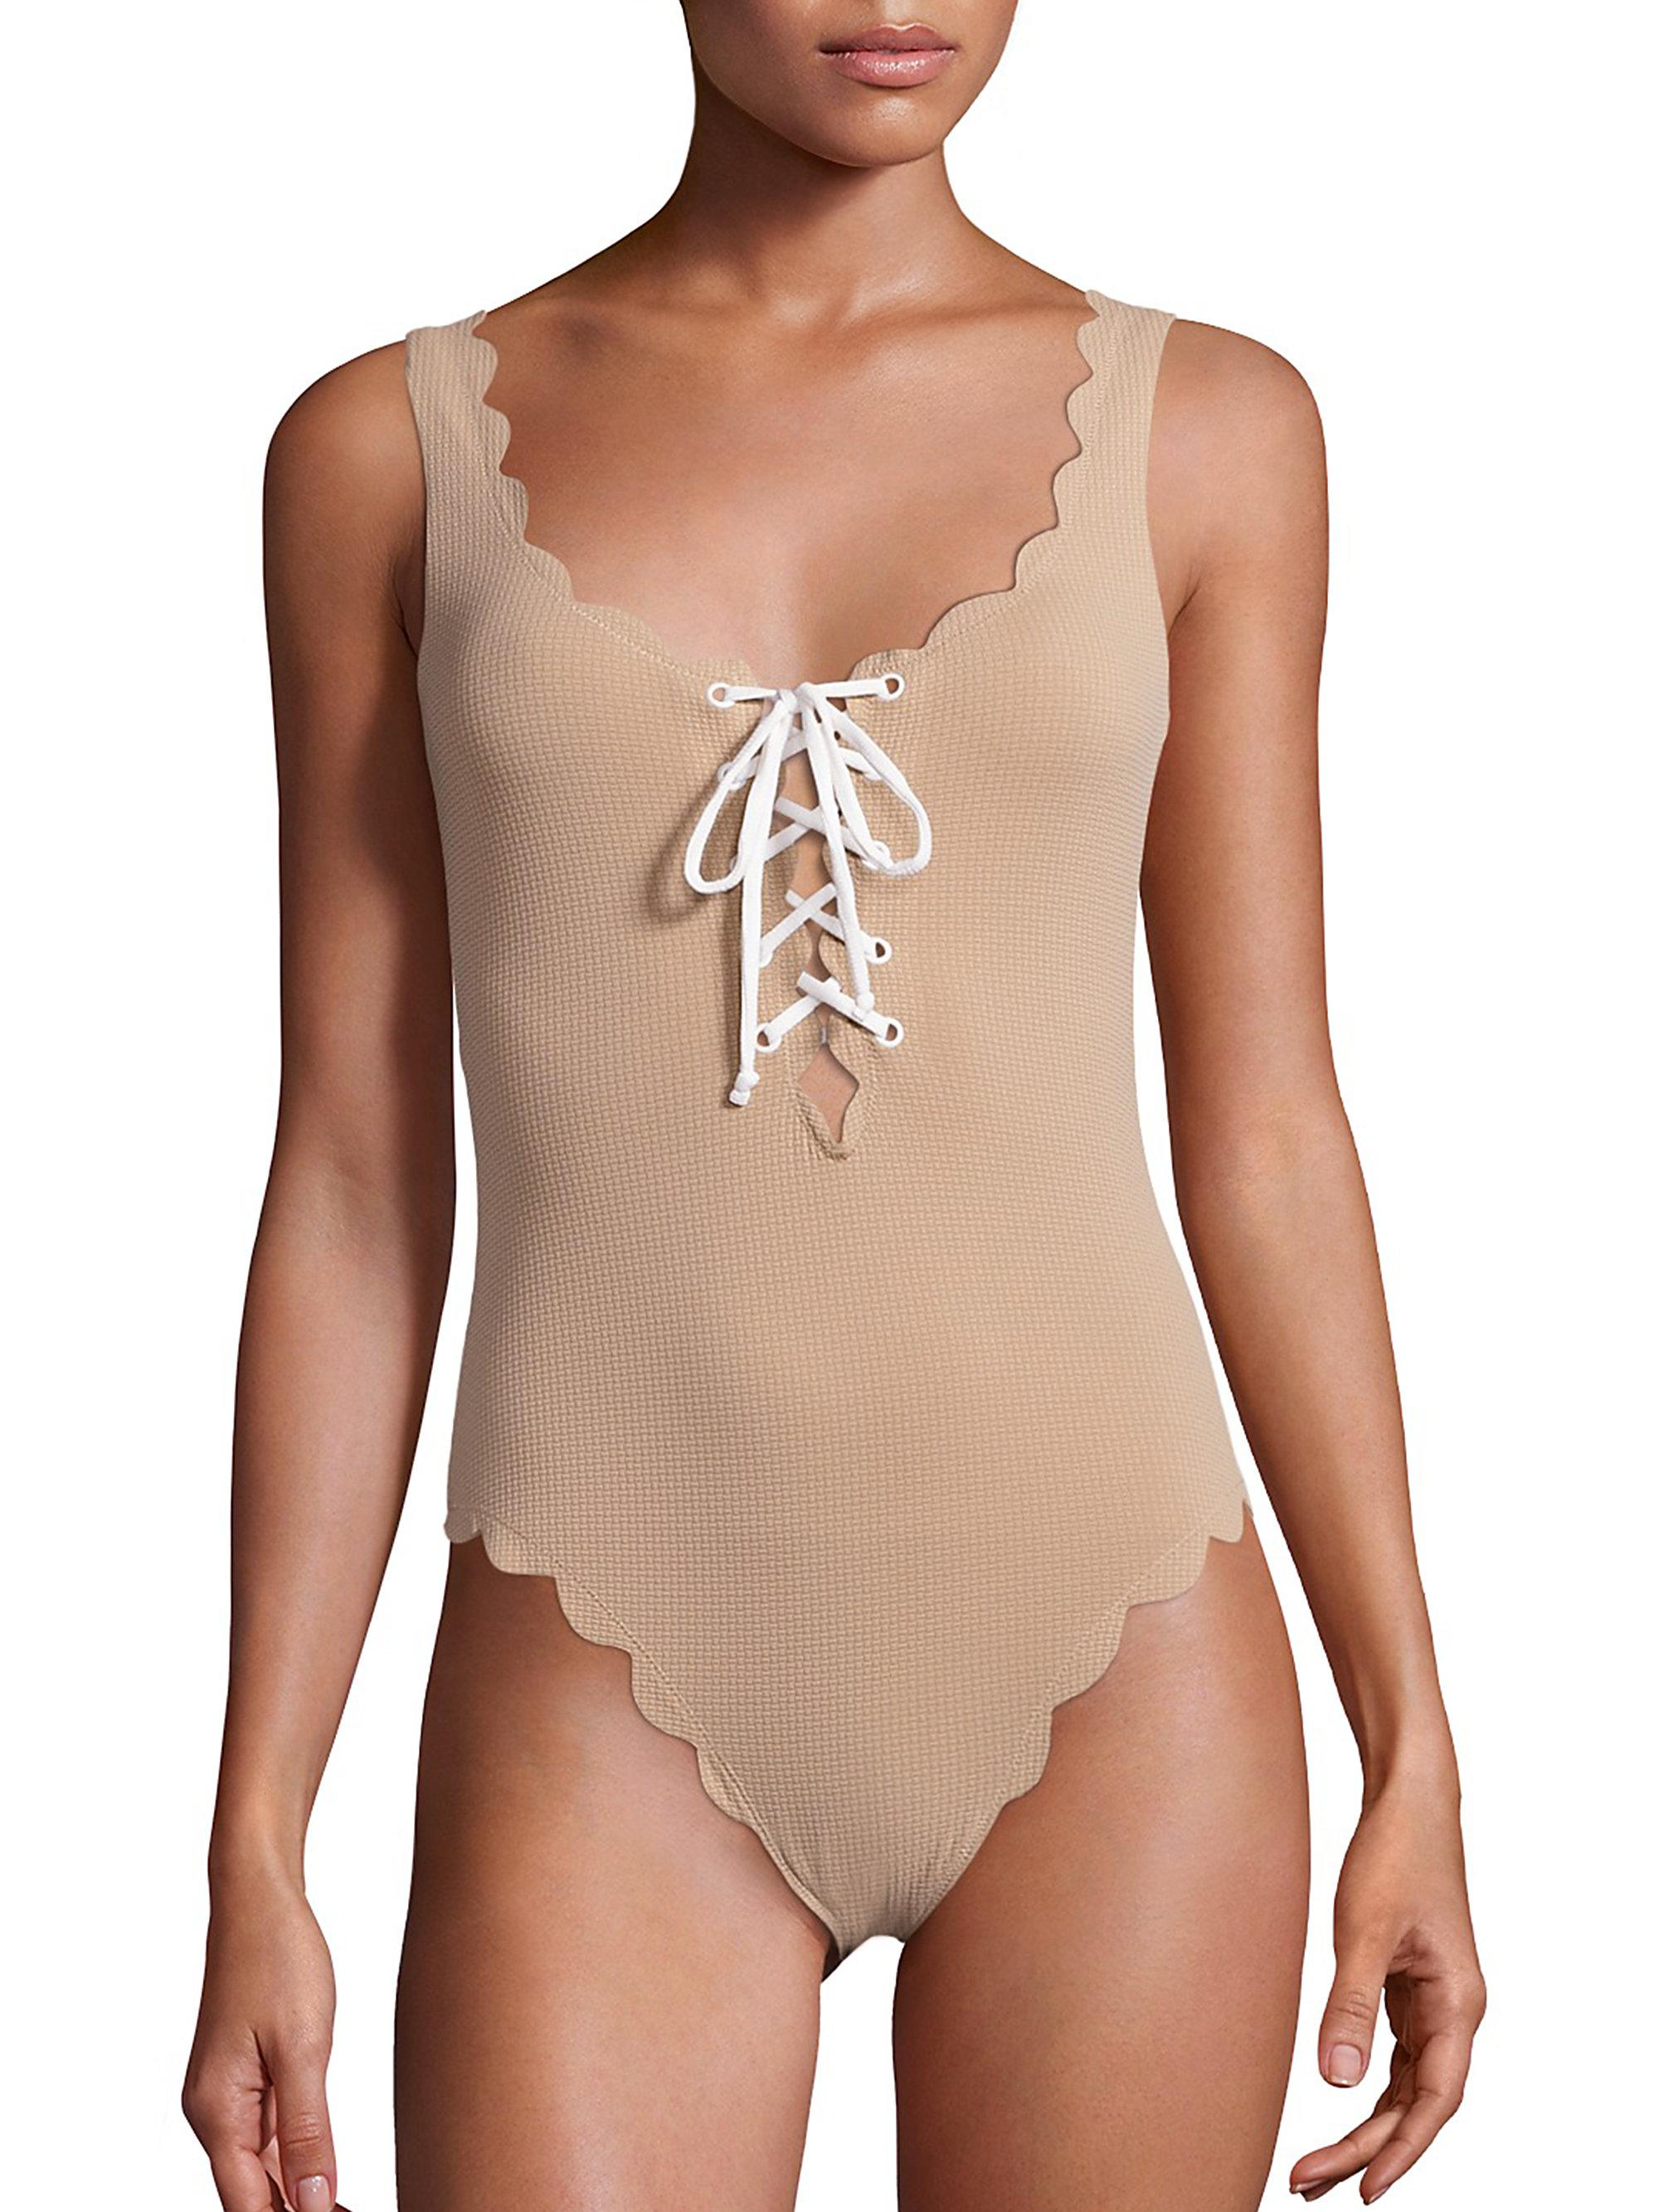 f7743ca085f Marysia Swim Palm Springs One-piece Textured Lace-up Maillot in ...